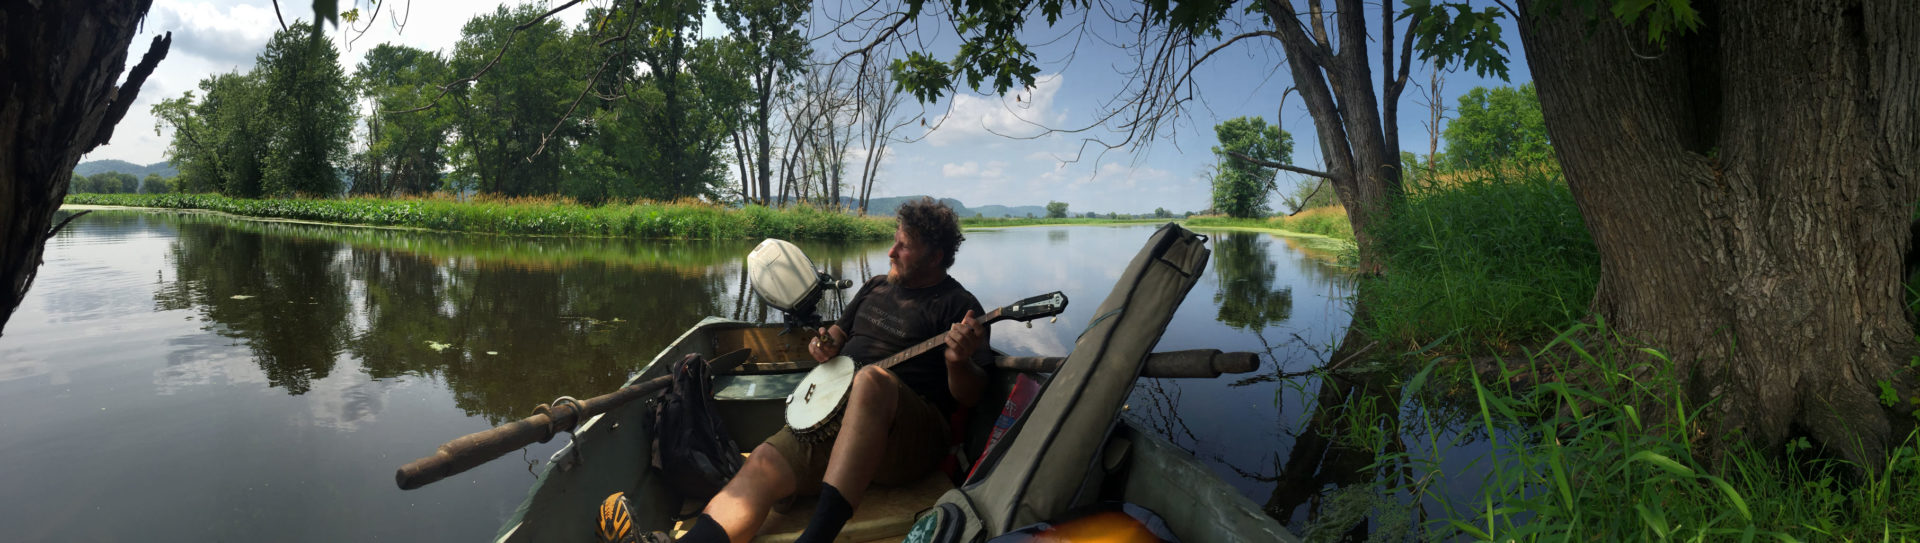 Artist and shantyboat captain Wes Modes relaxes in the johnboat on the Mississippi River near Brownsville, Minnesota.